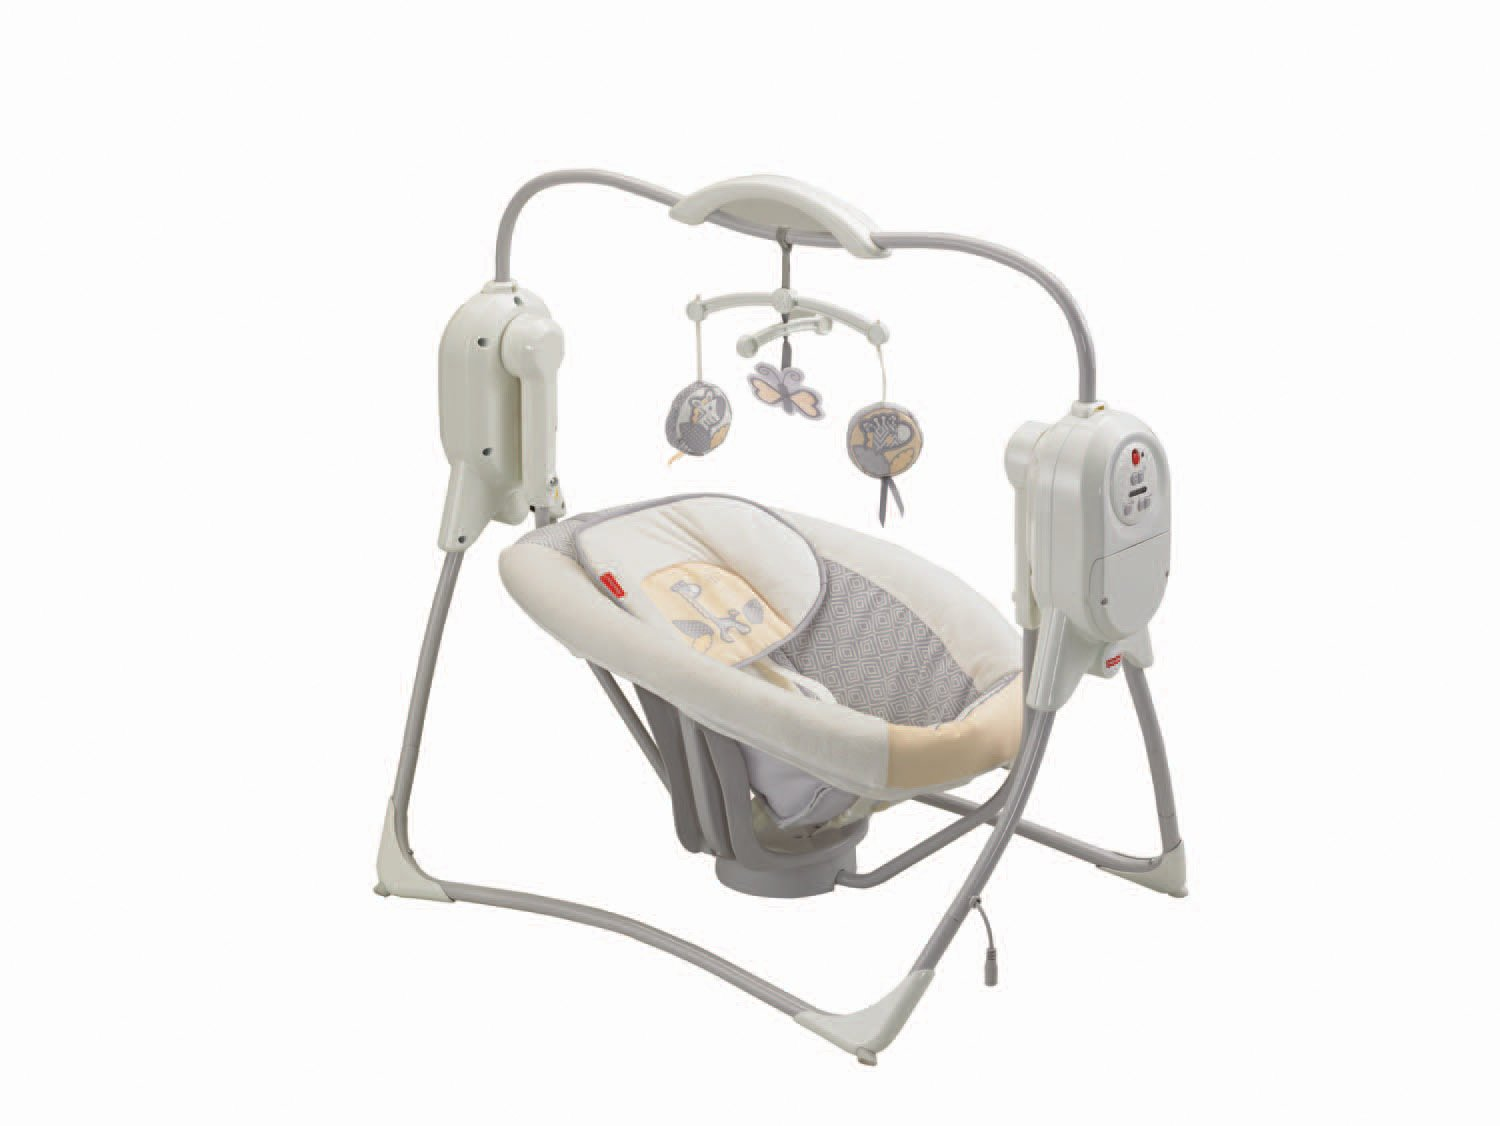 Fisher-Price Power Plus SpaceSaver Cradle 'n Swing (Discontinued by Manufacturer)